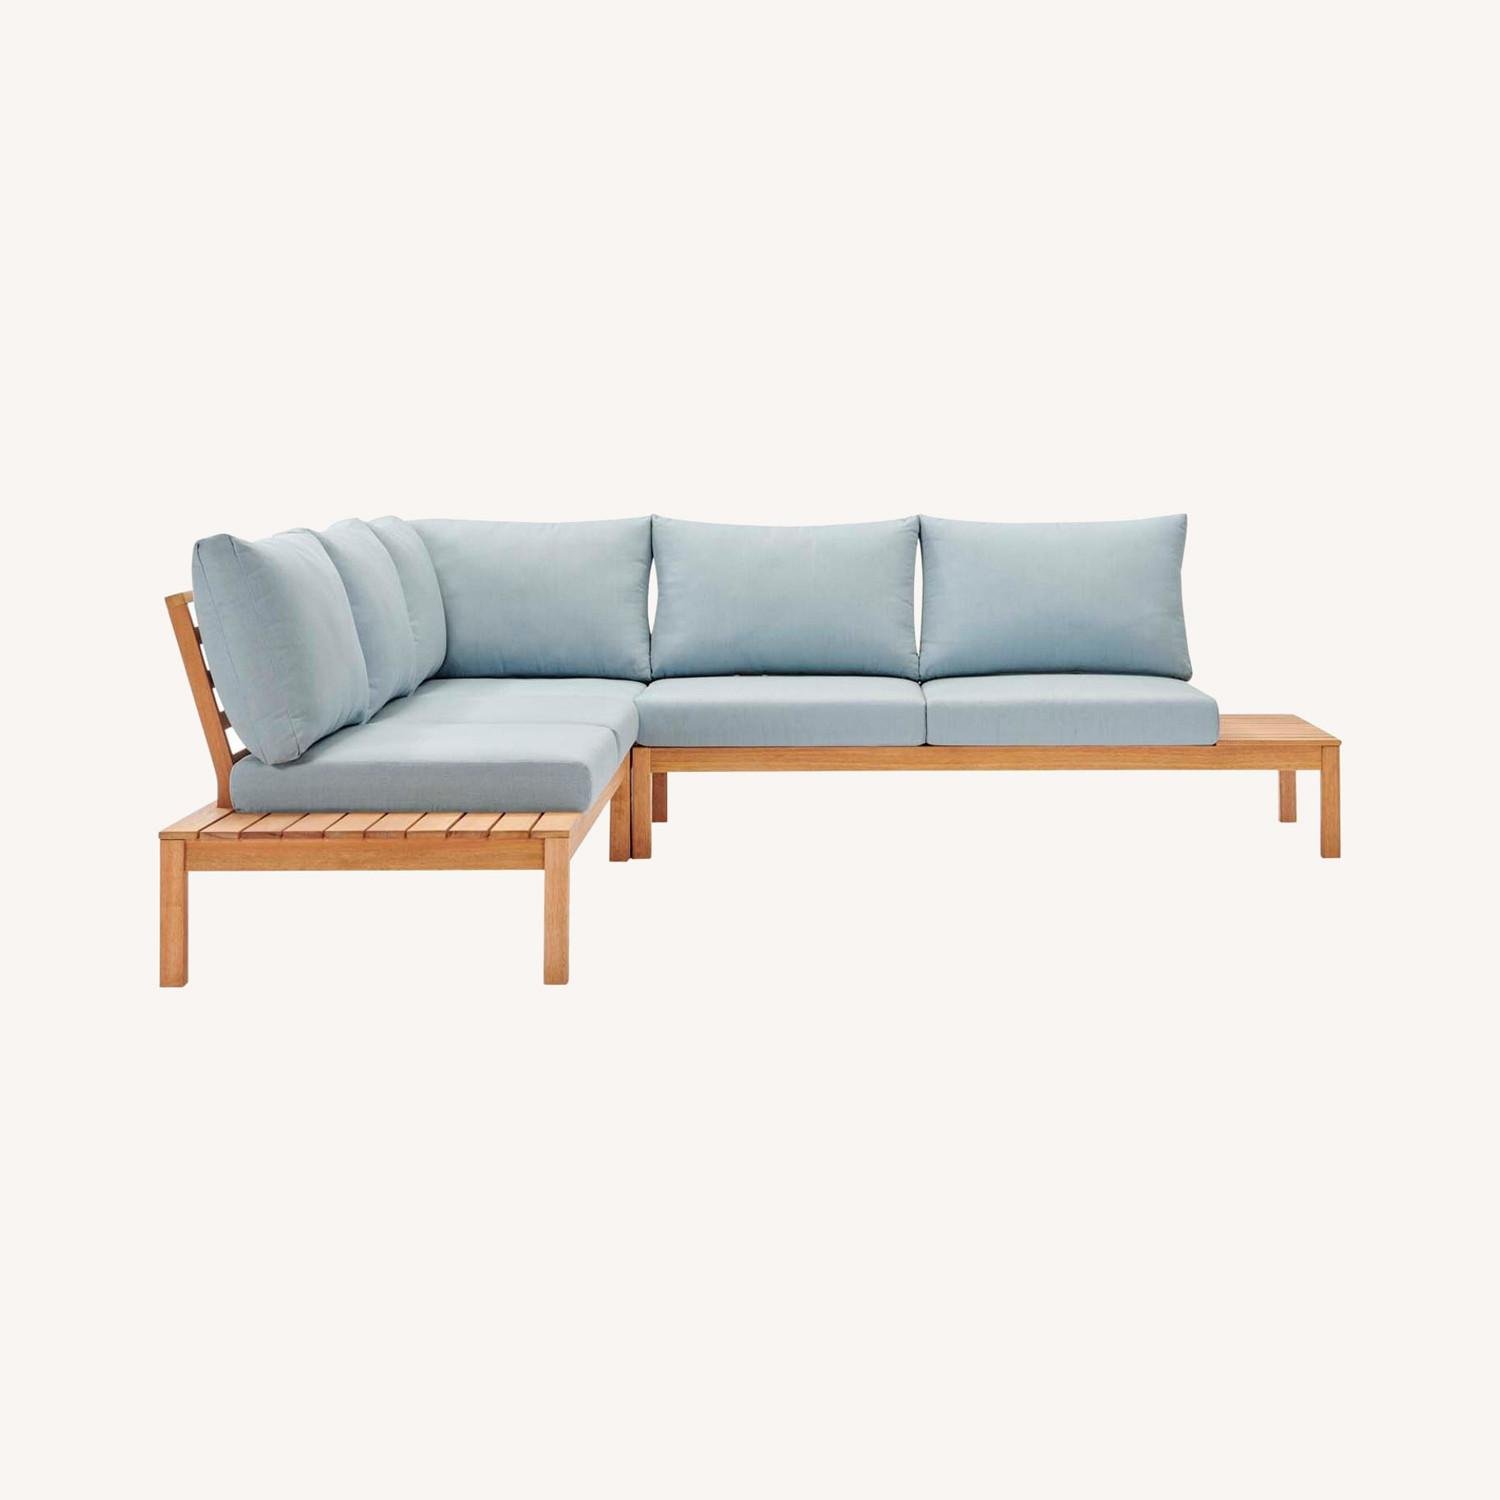 3-Piece Outdoor Sectional In Natural Light Blue - image-9